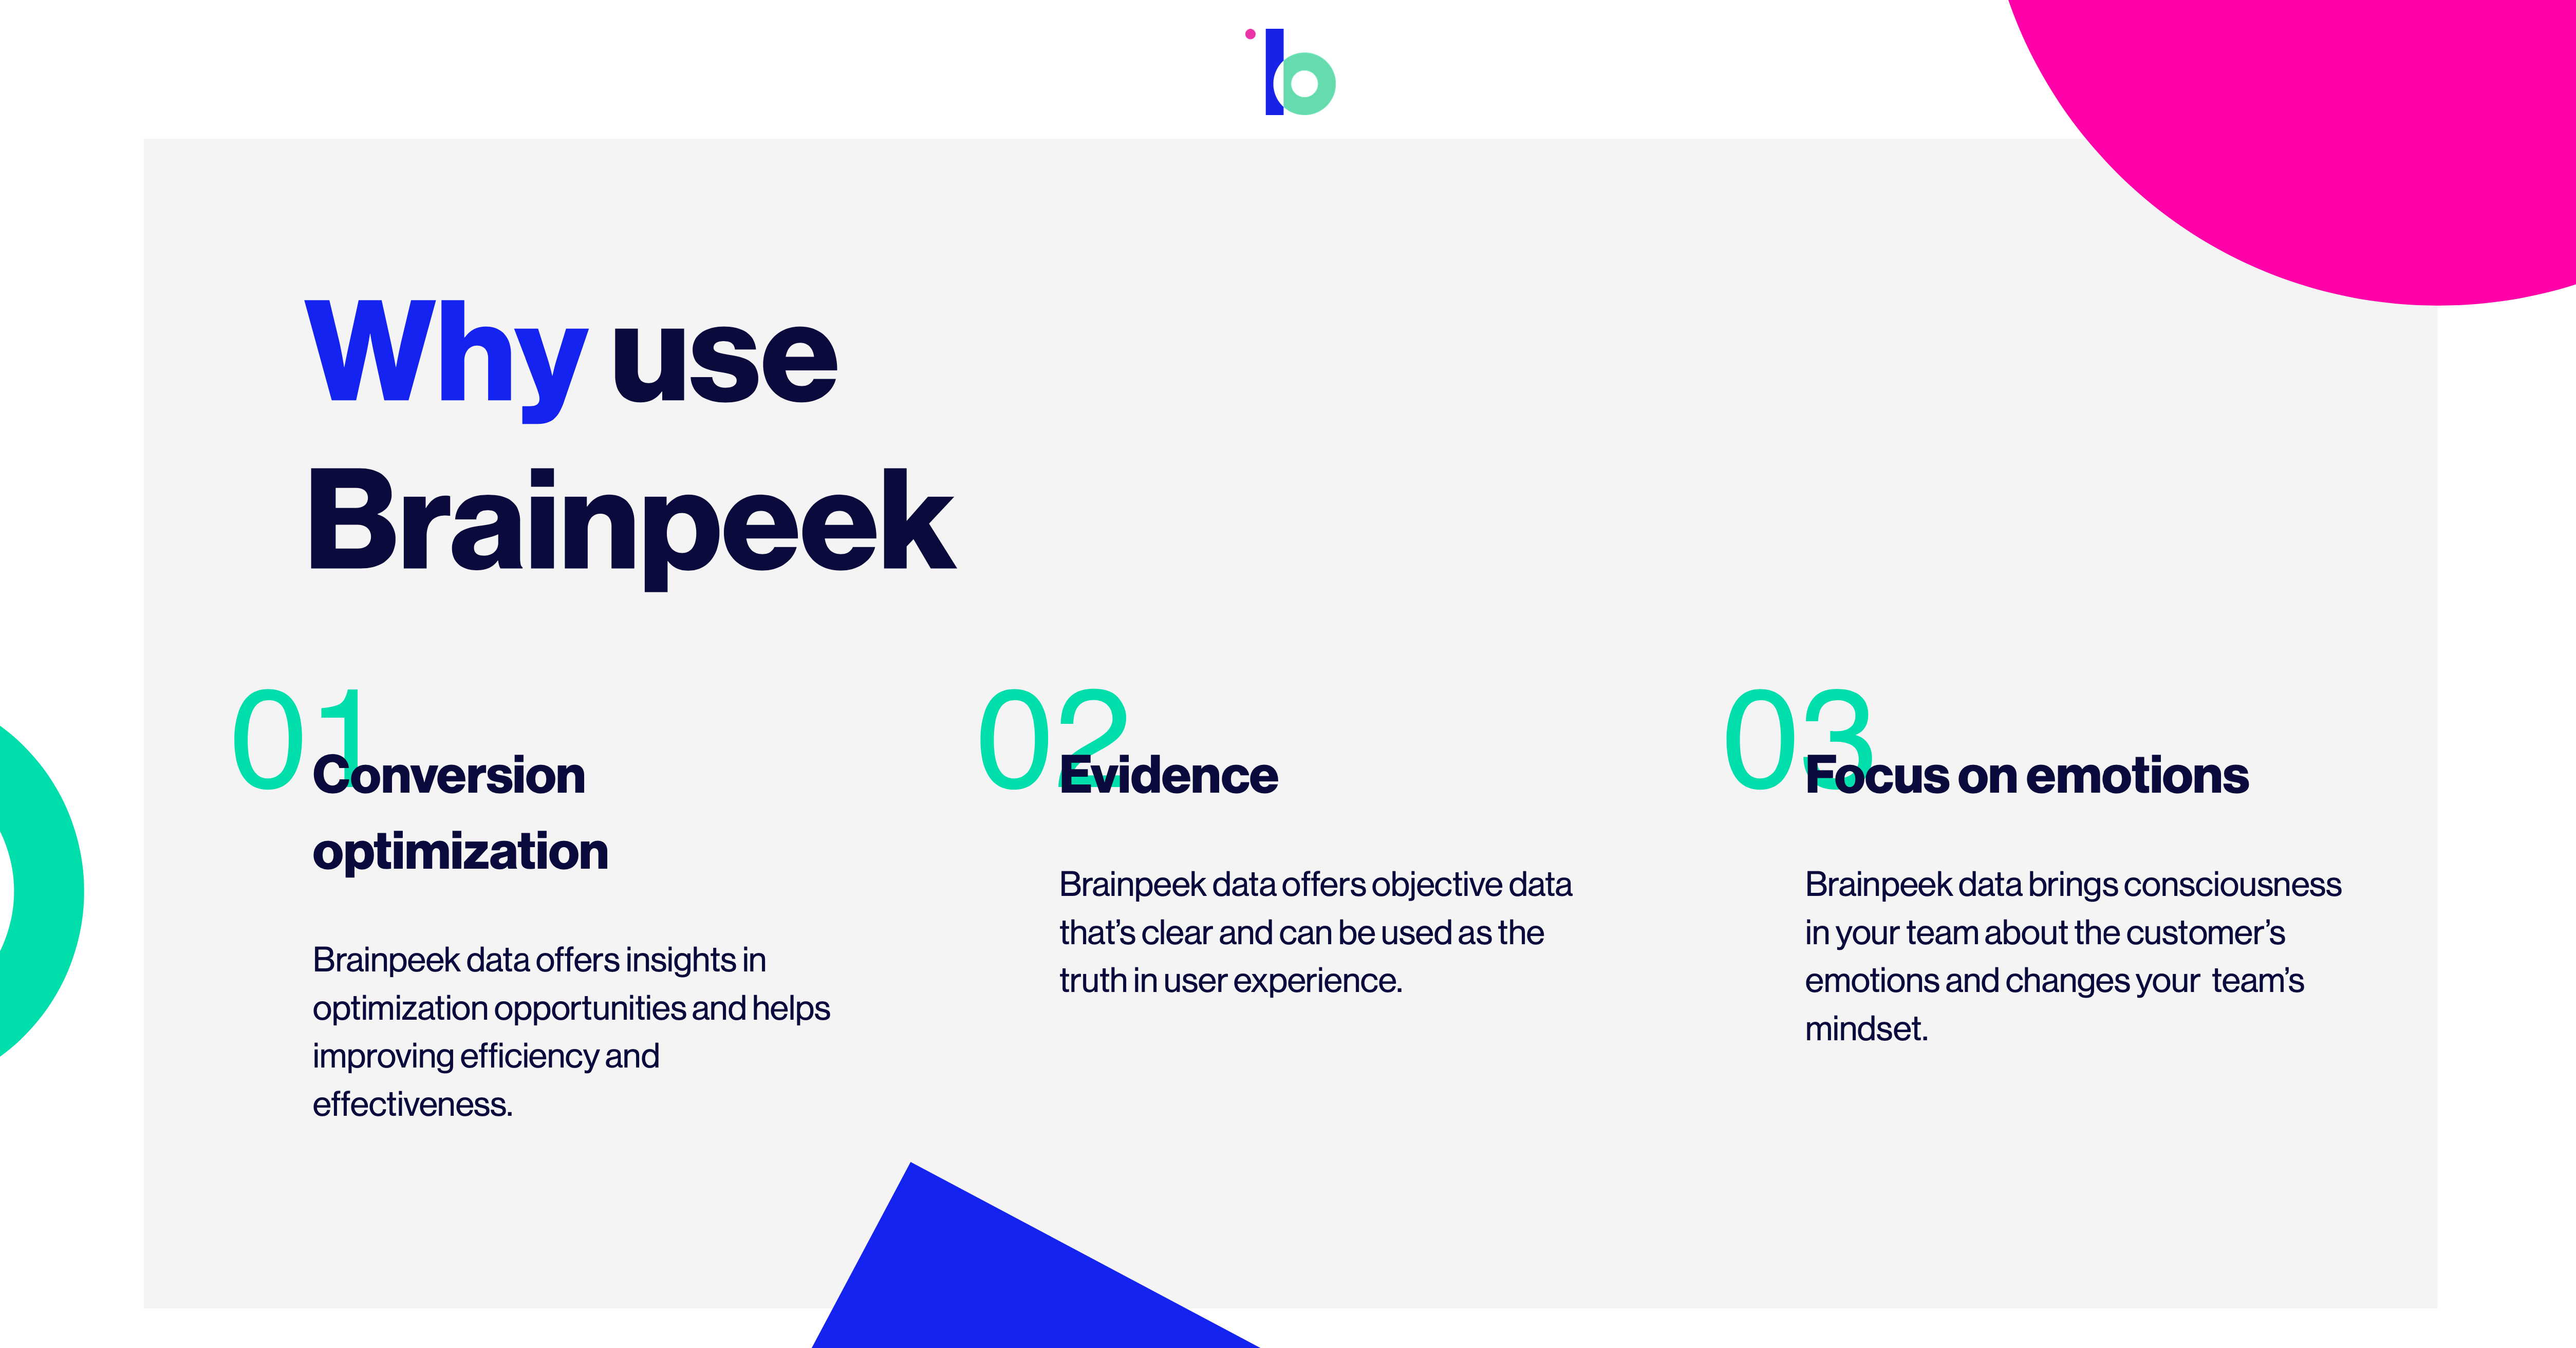 why use brainpeek